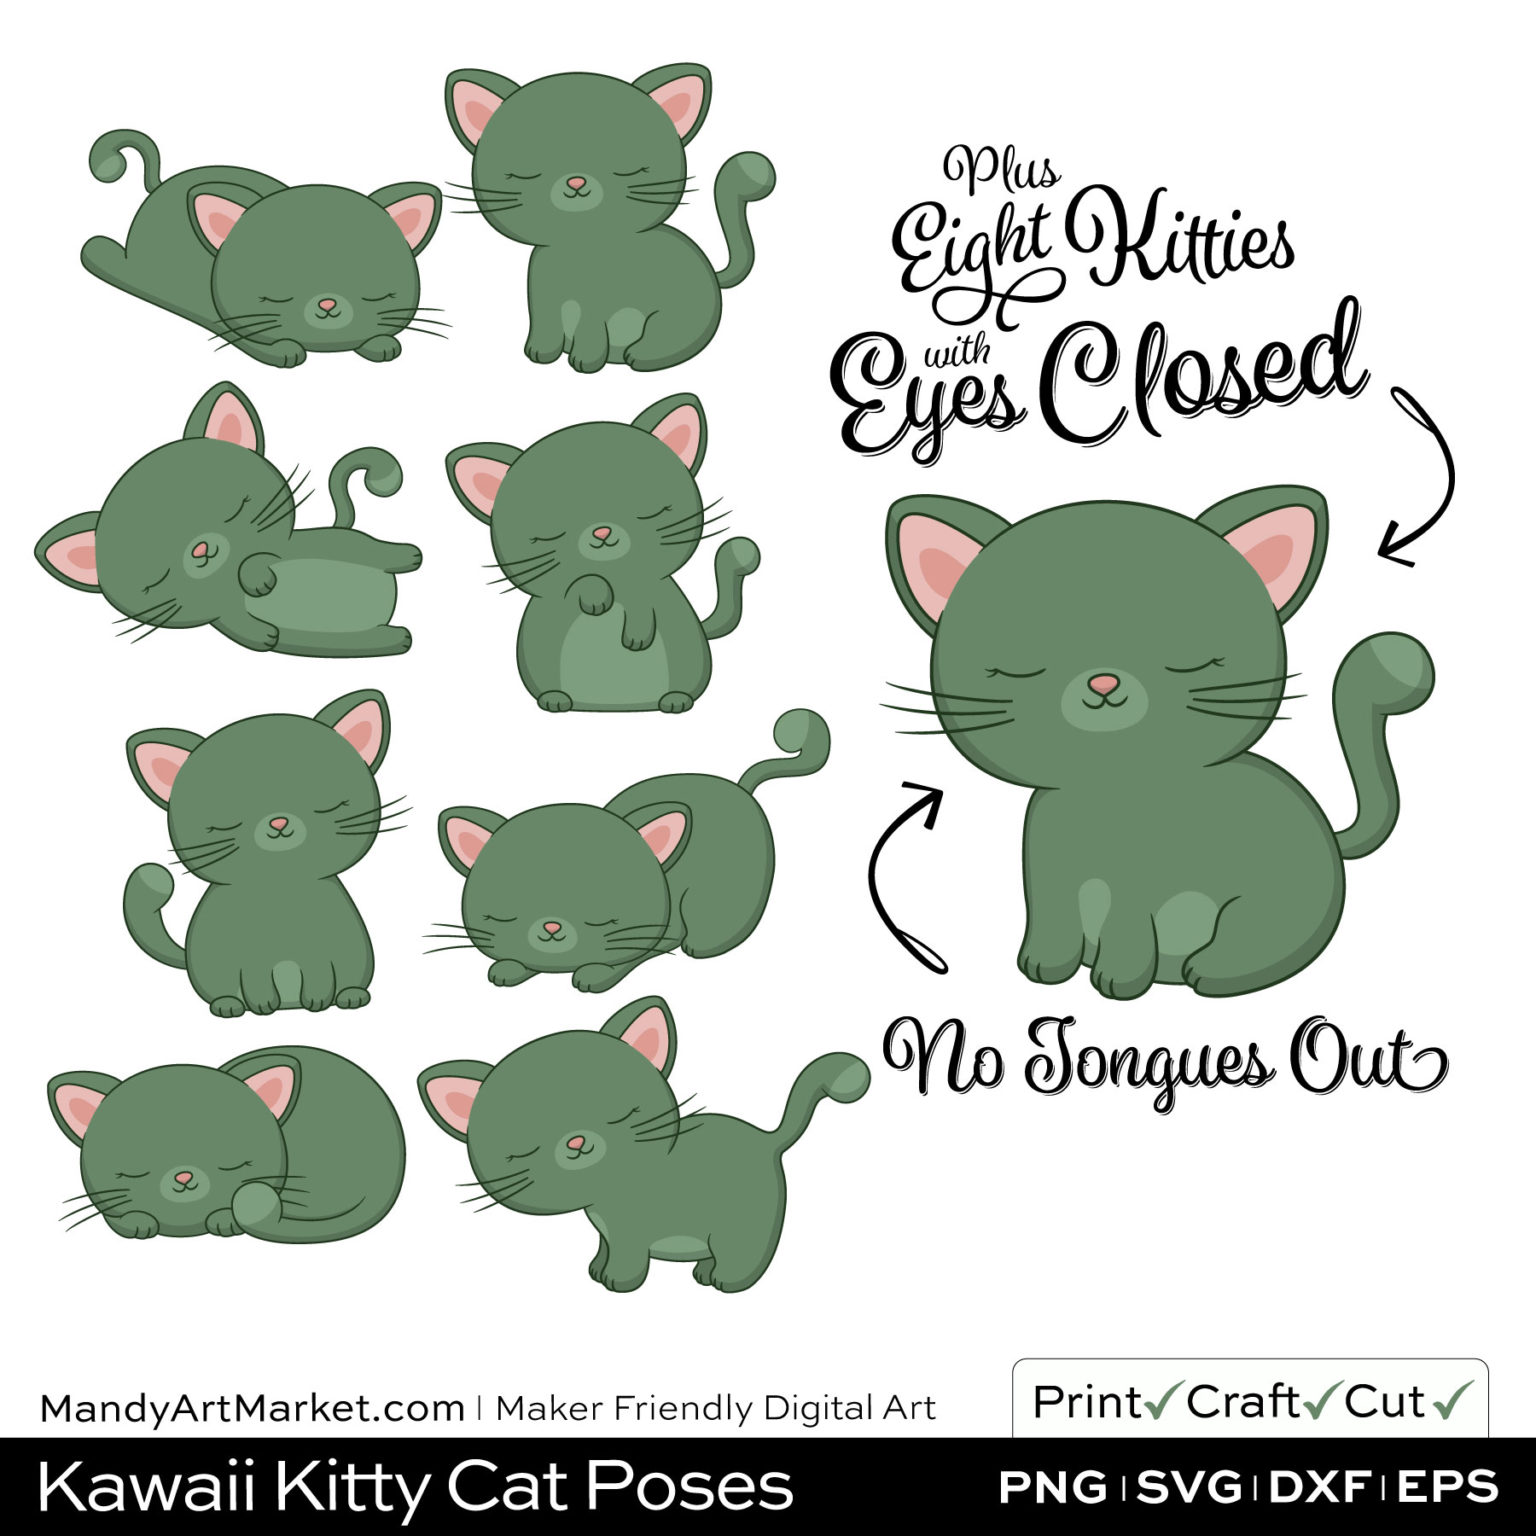 Artichoke Green Kawaii Kitty Cat Poses Clipart PNGs Included in Download